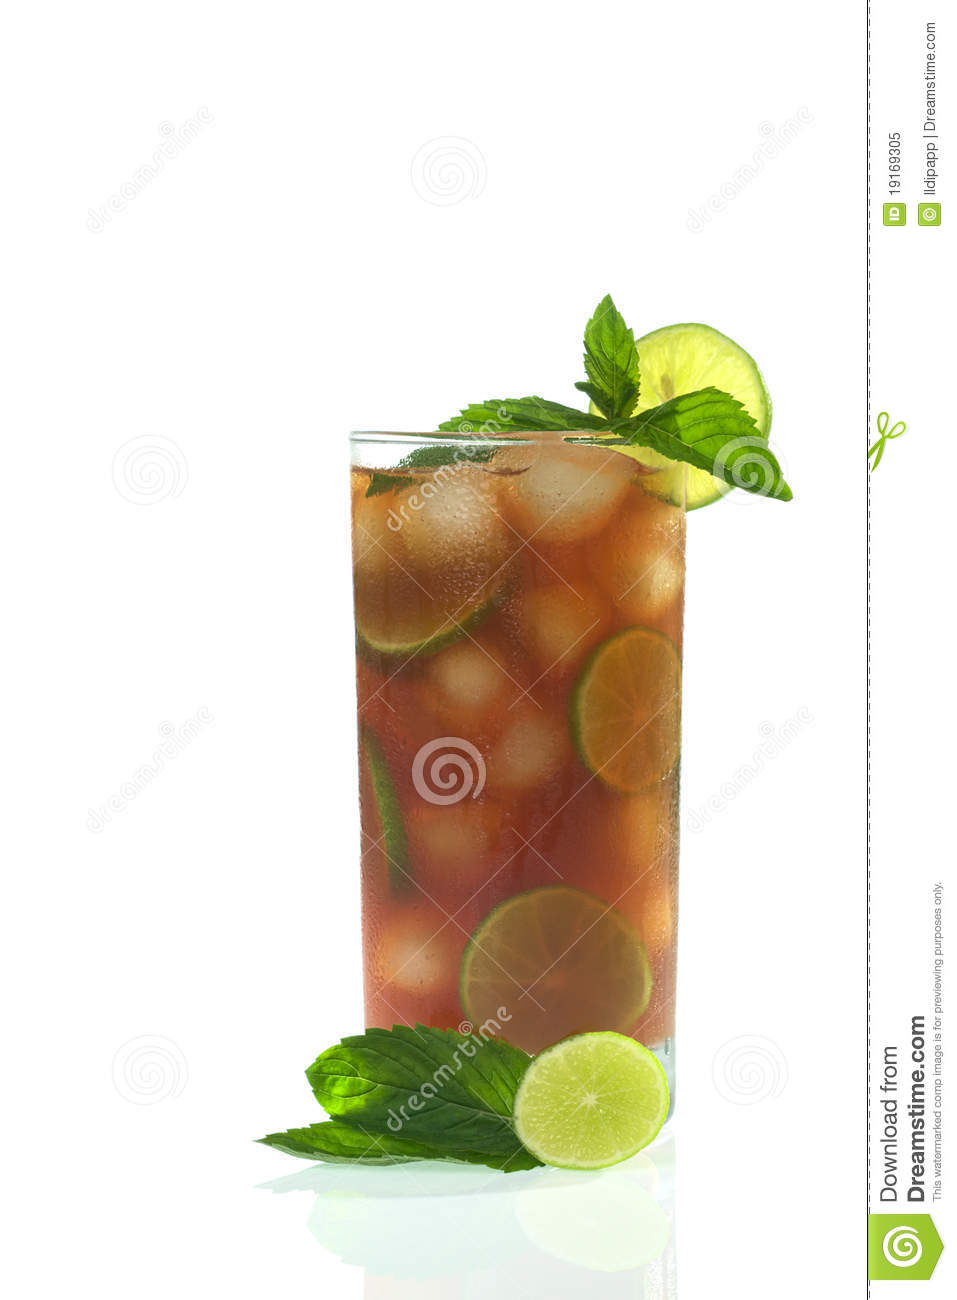 ... tea, ice cubes, lime slices, garnished with fresh mint leaves and lime